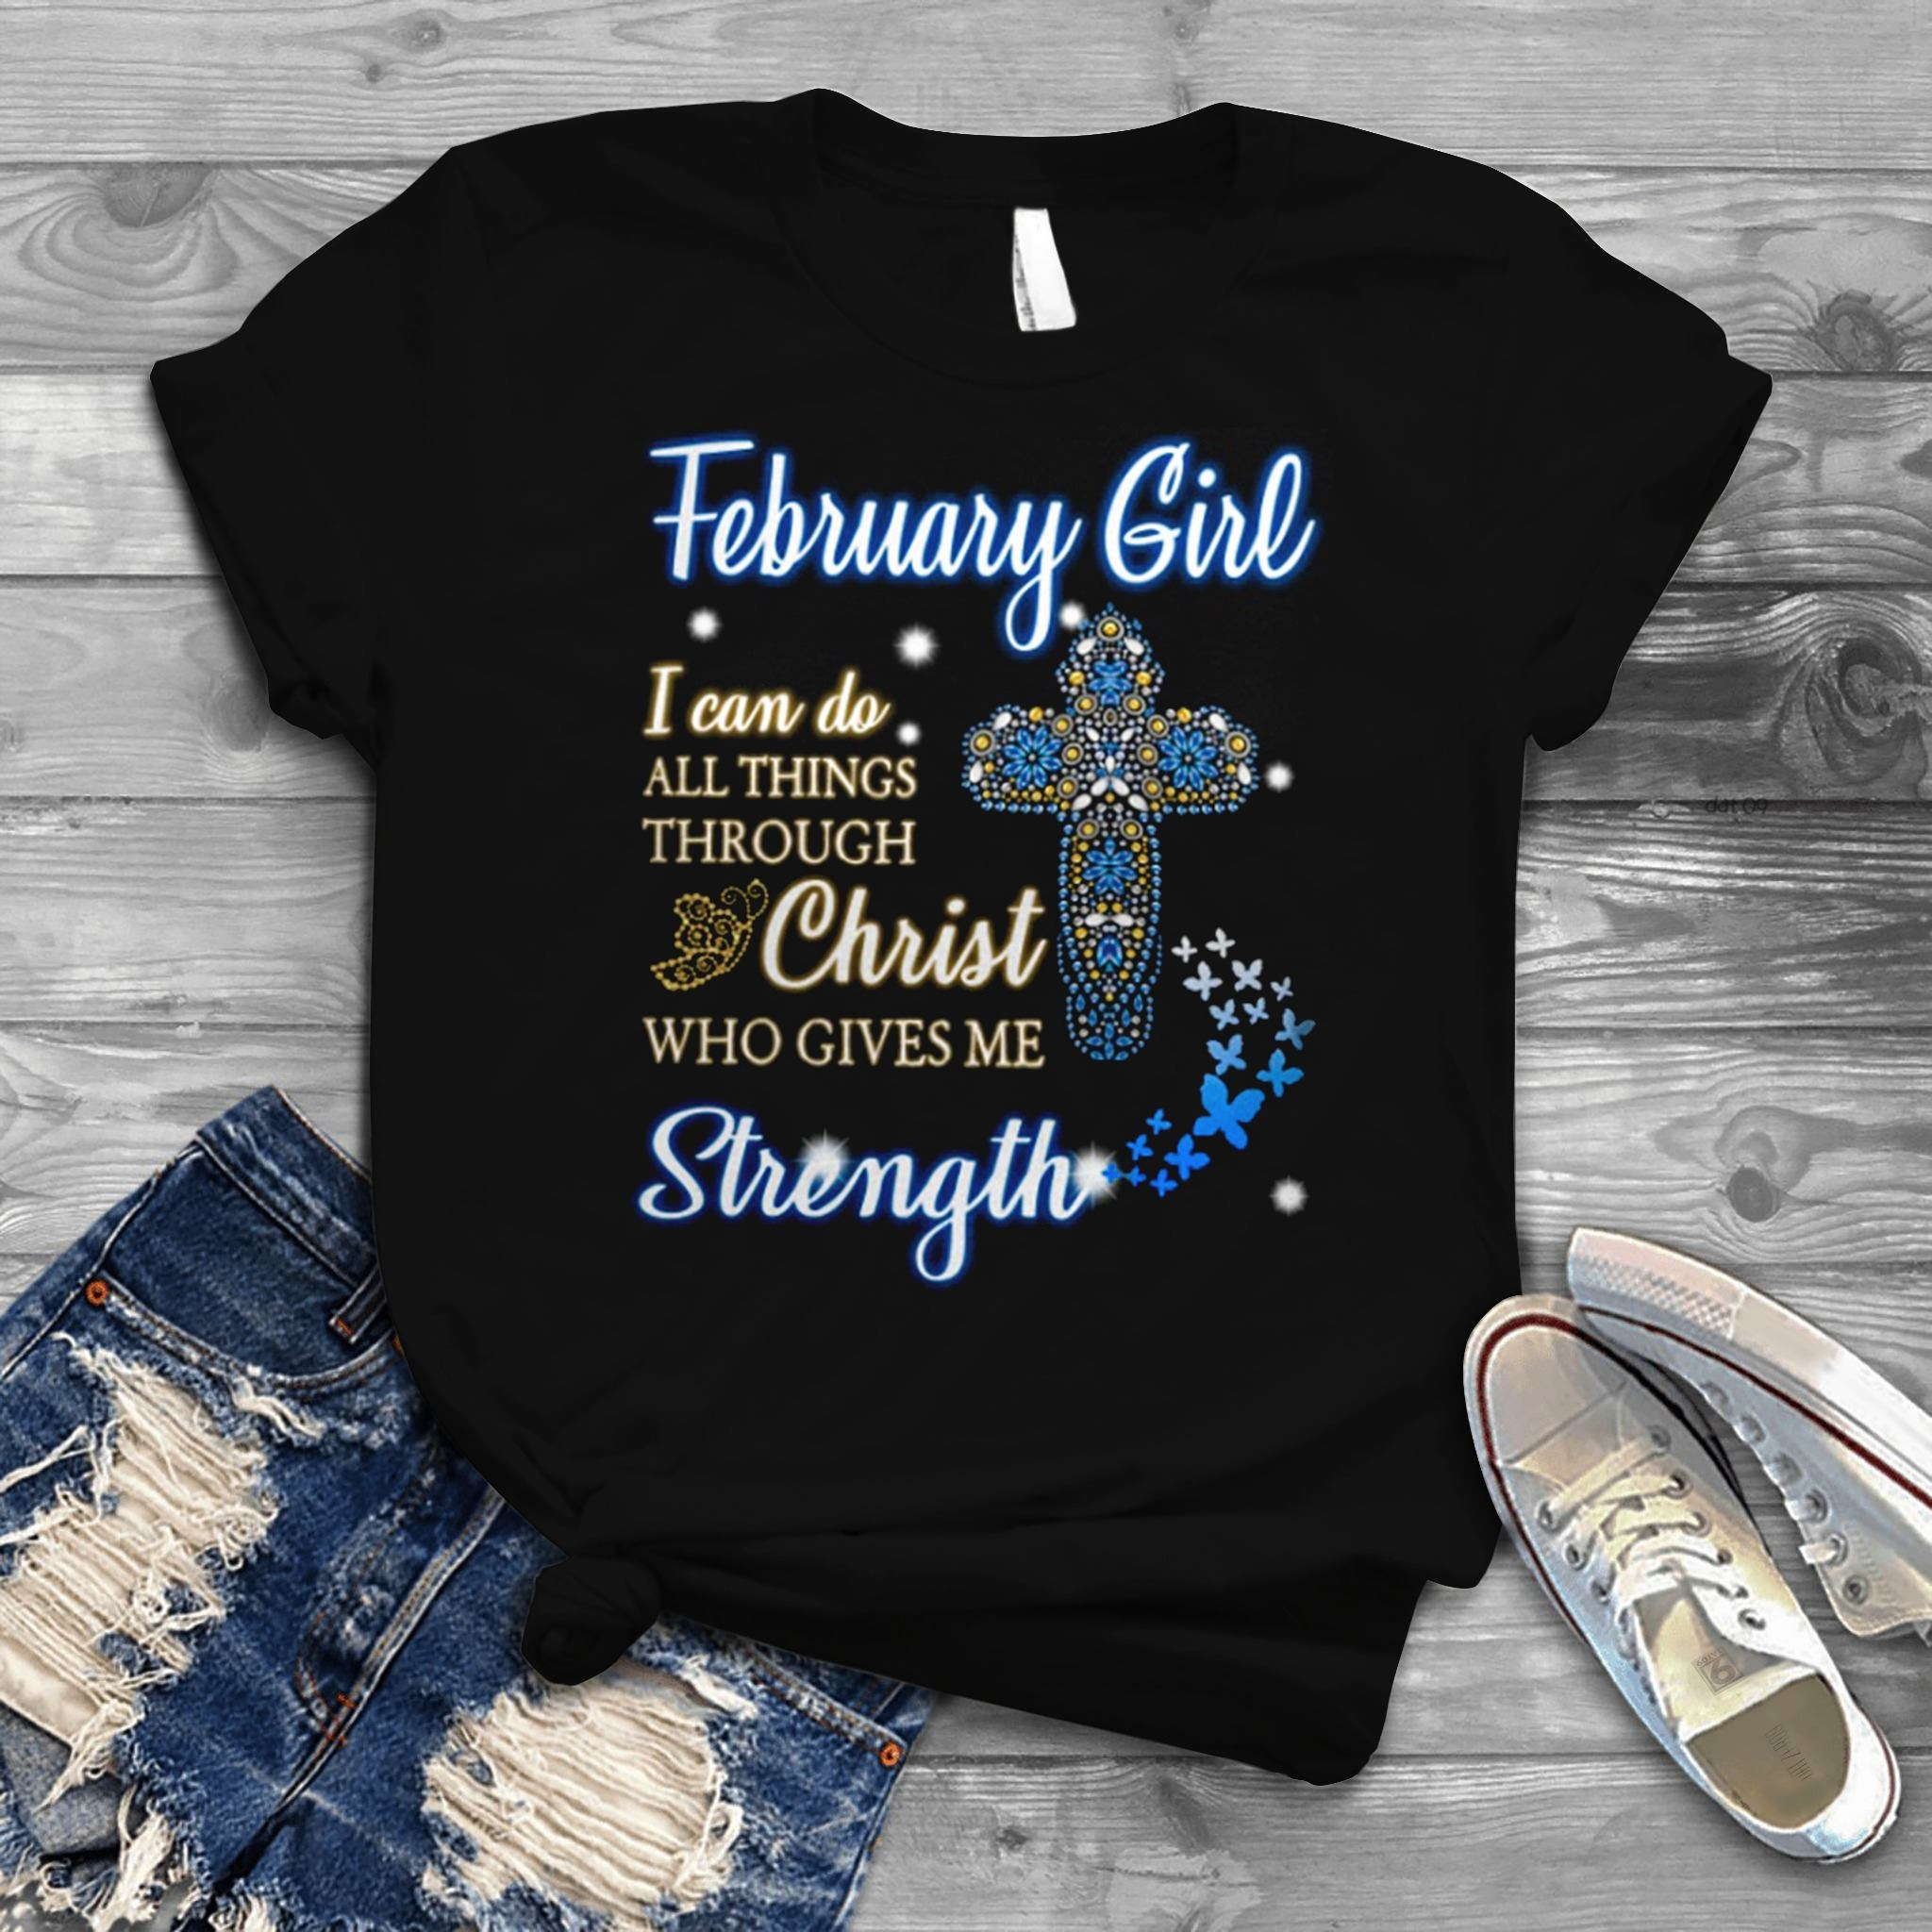 February Girl I Can Do All Things Through Christ Who Gives Me Strength Hoodie